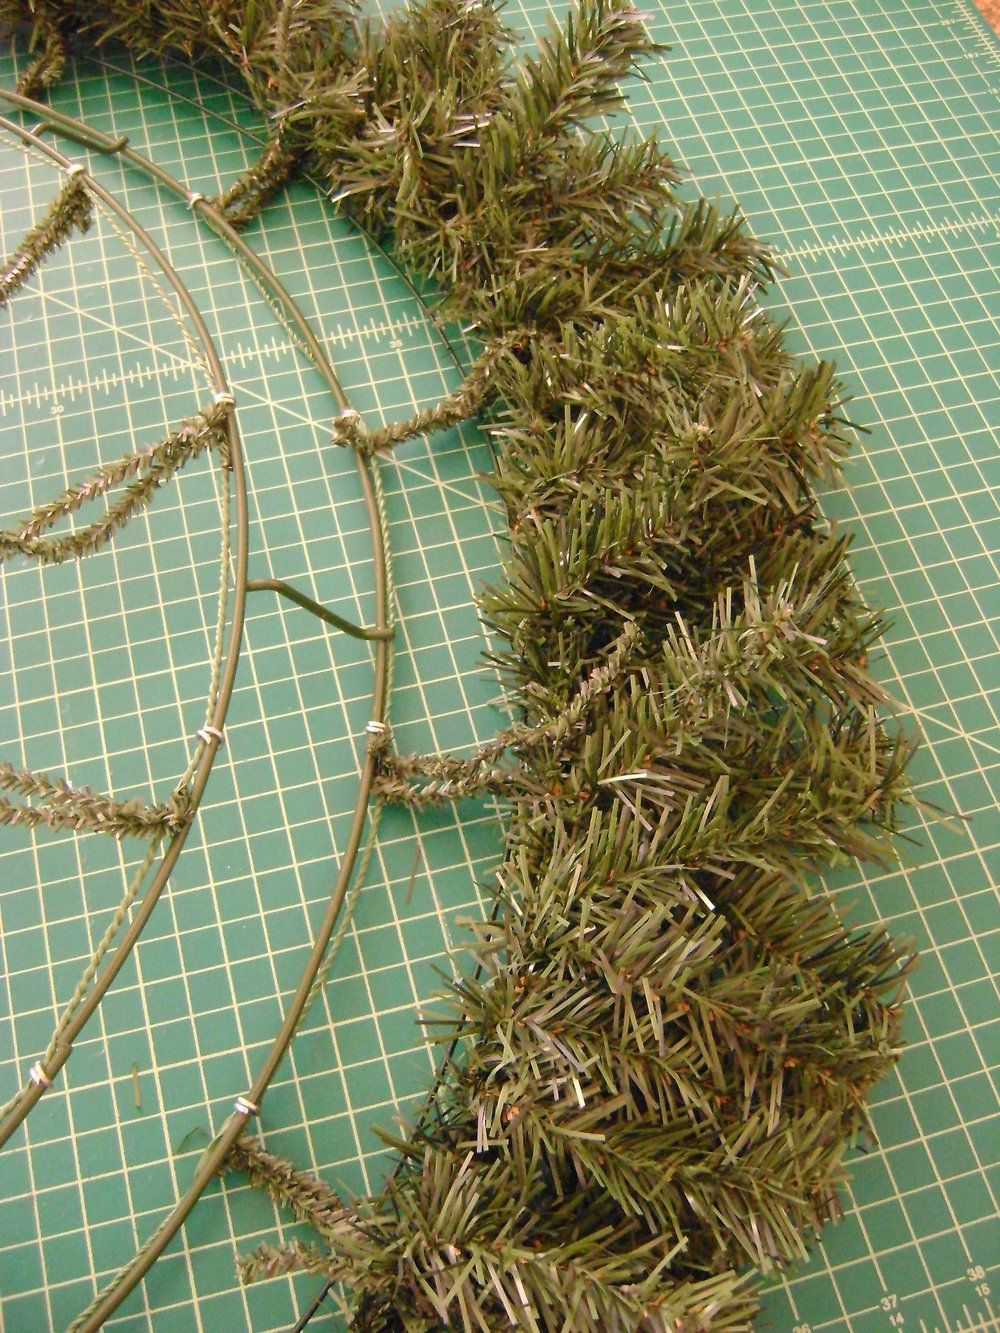 step 5 - As you attach the garland, bend all the stems to the outside which will give the wreath a larger diameter.